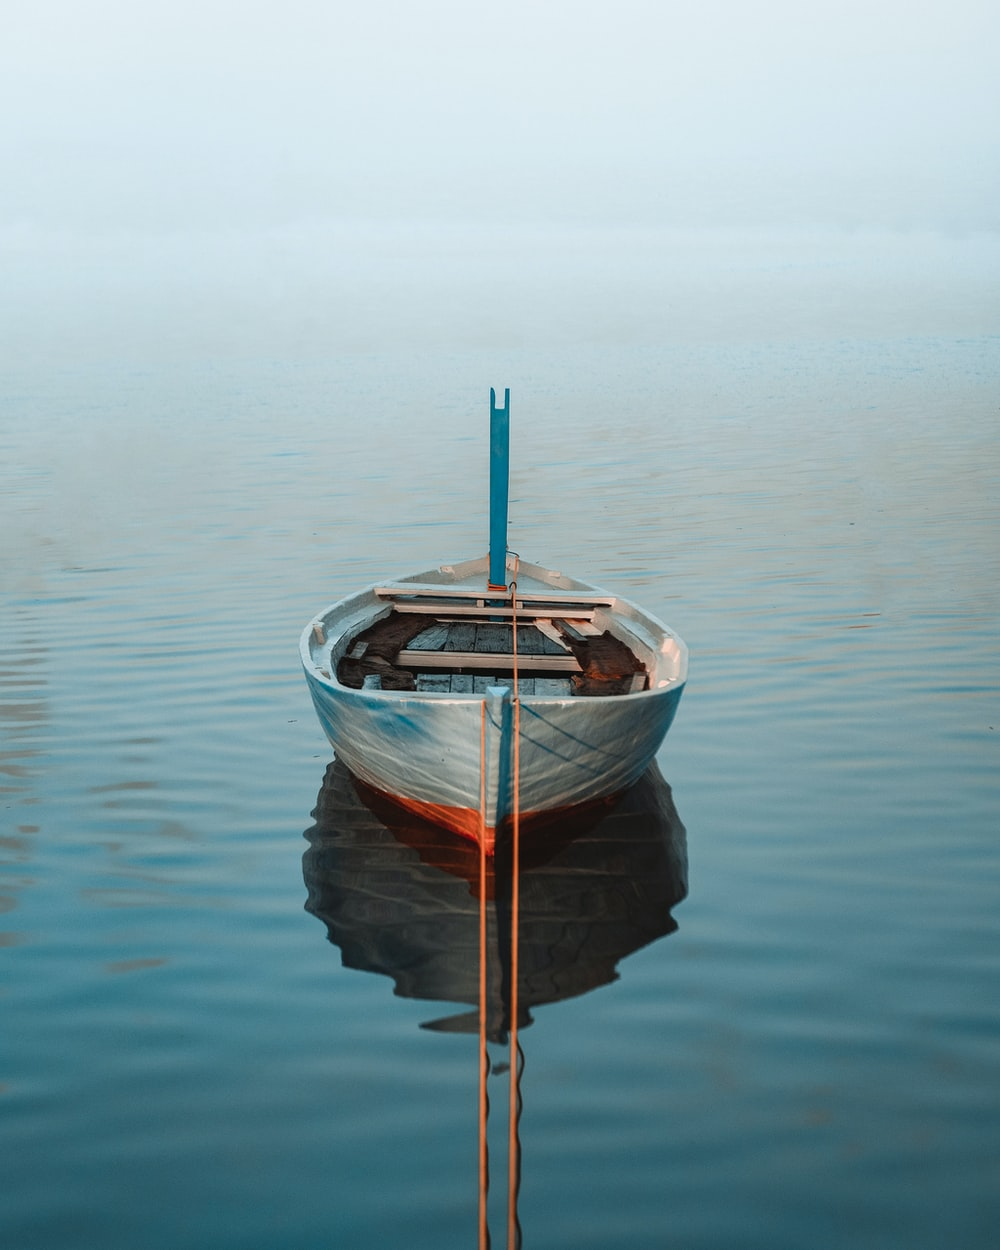 white boat surrounded by body of water